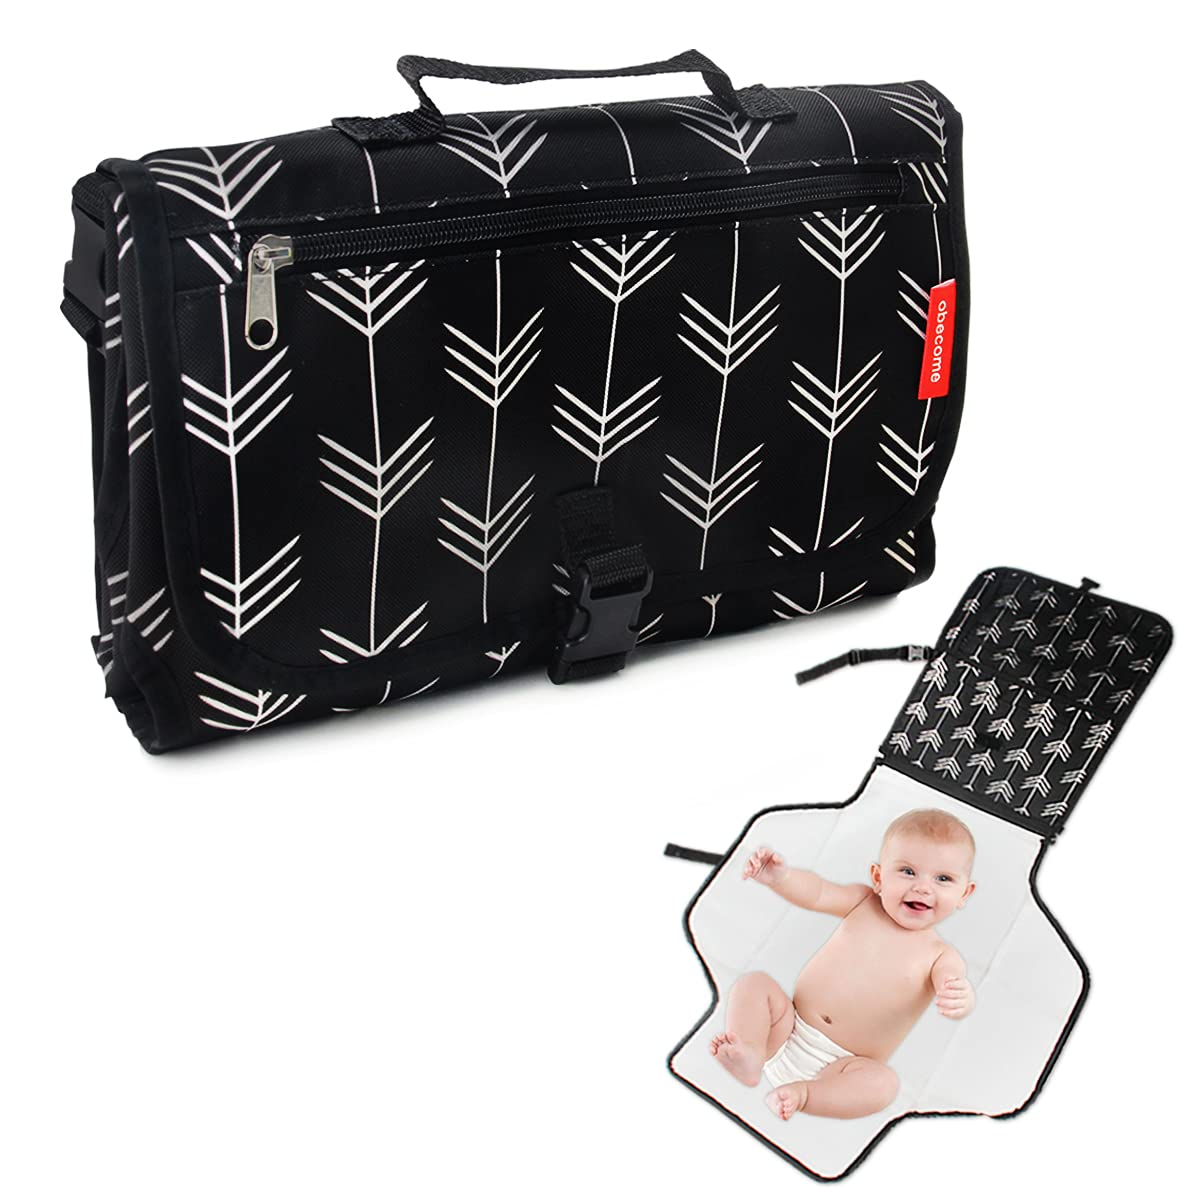 Obecome Portable Baby Diaper Changing Pad Kit